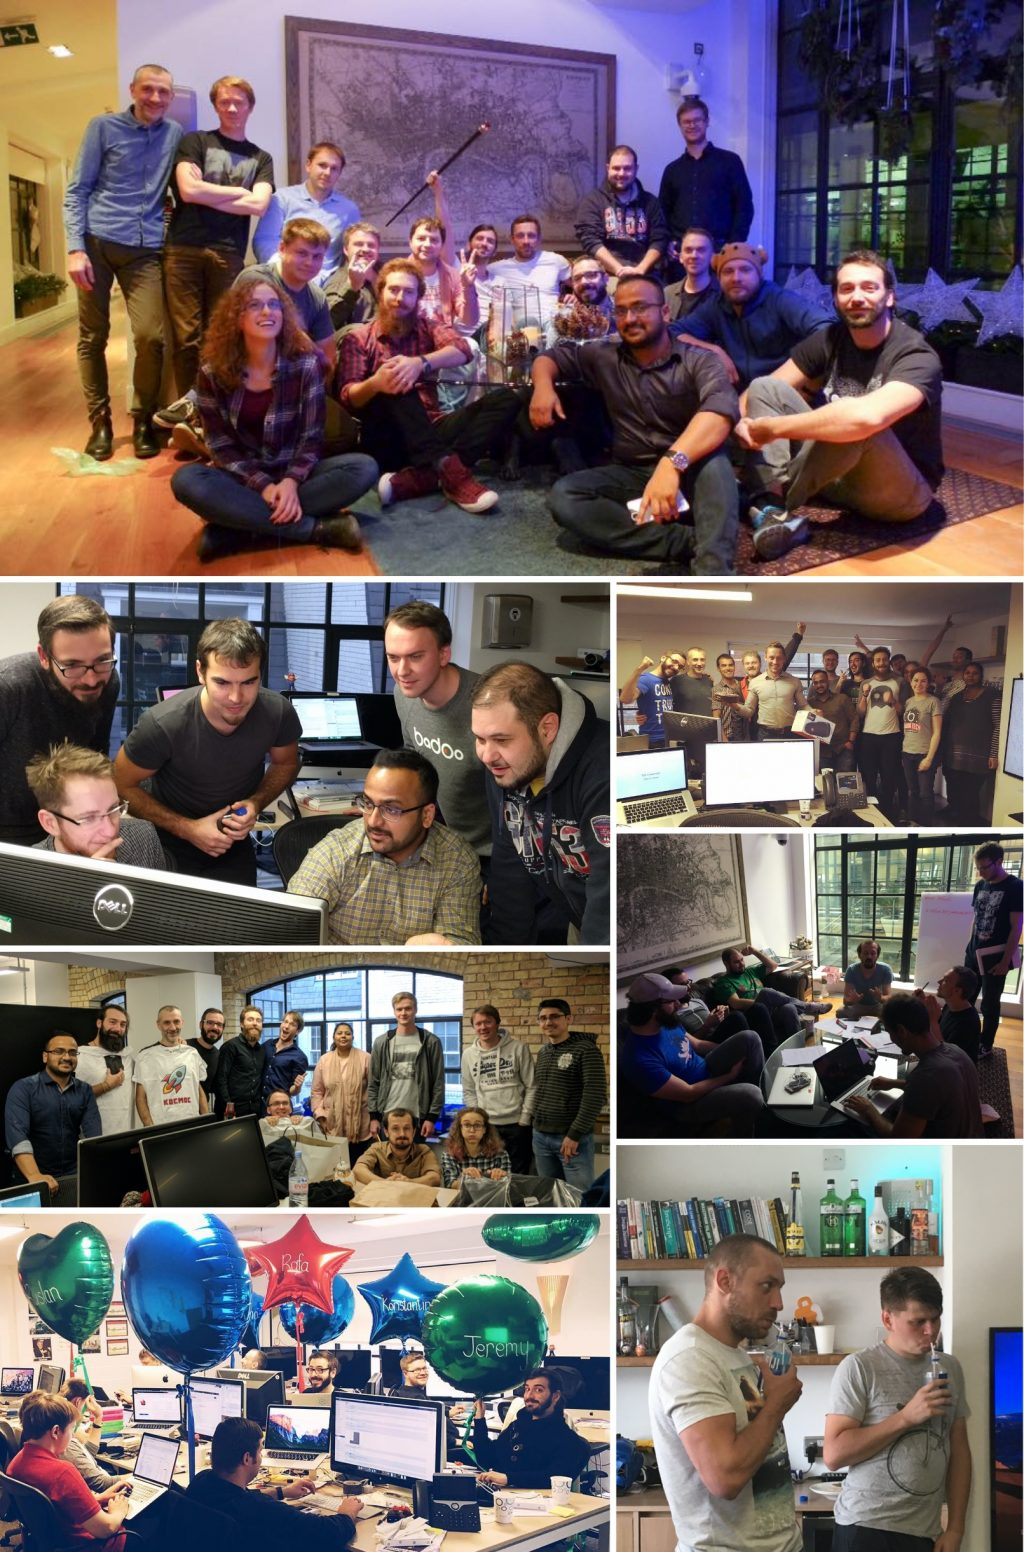 A collage of photos of the Mobile Web team